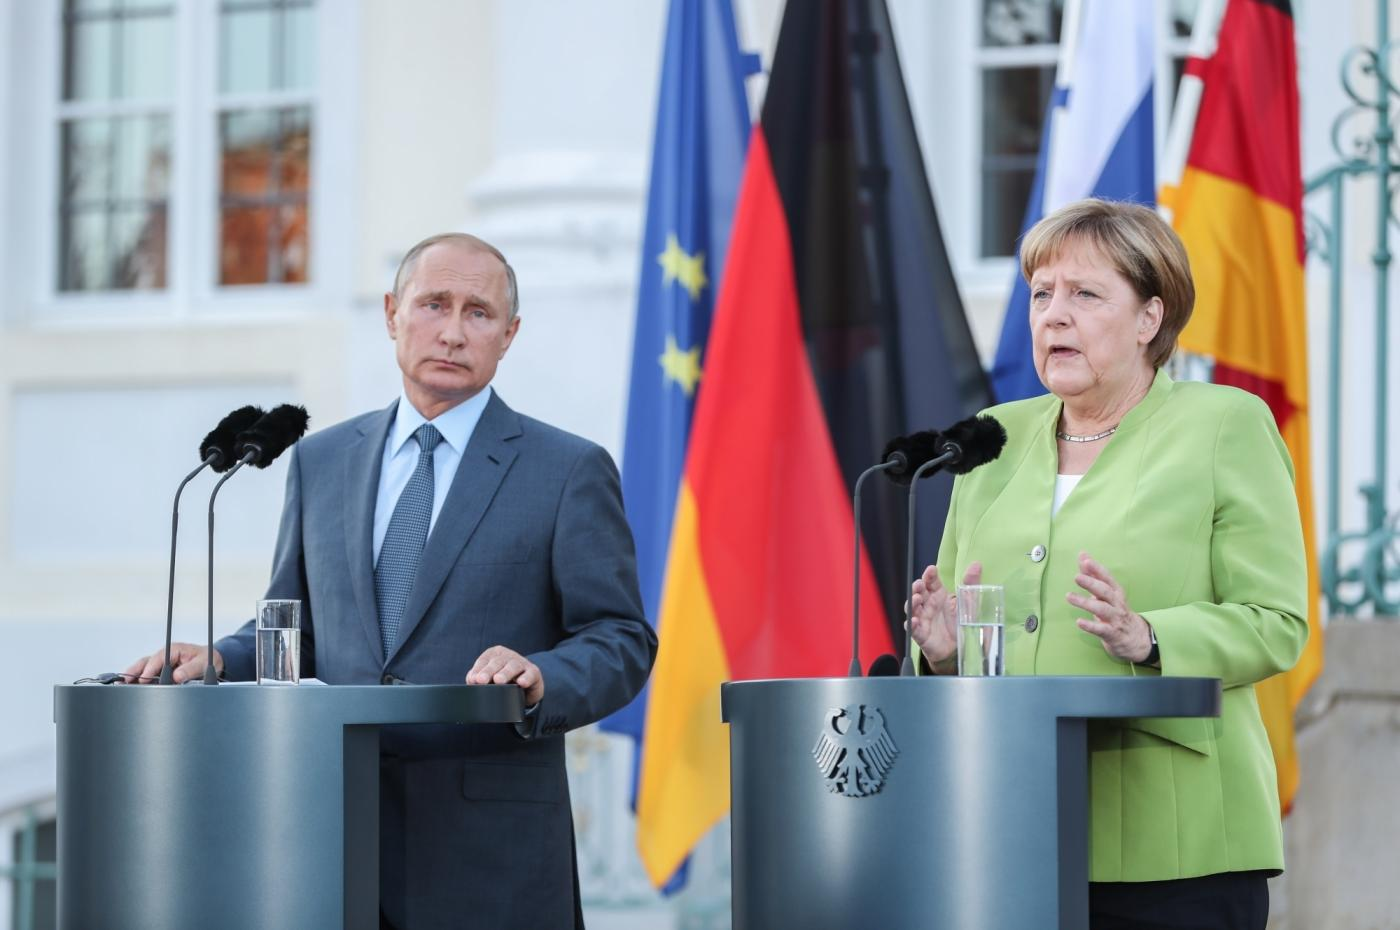 MESEBERG (GERMANY), Aug. 18, 2018 (Xinhua) -- German Chancellor Angela Merkel (R) and visiting Russian President Vladimir Putin attend a joint press conference at the Schloss Meseberg, north of Berlin, Germany, on Aug. 18, 2018. German Chancellor Angela Merkel and Russian President Vladimir Putin held talks in north of Berlin on Saturday, with the topics ranging from Syria, Ukraine, Iran as well as the Nord Stream 2 gas pipeline project. (Xinhua/Shan Yuqi/IANS) by .